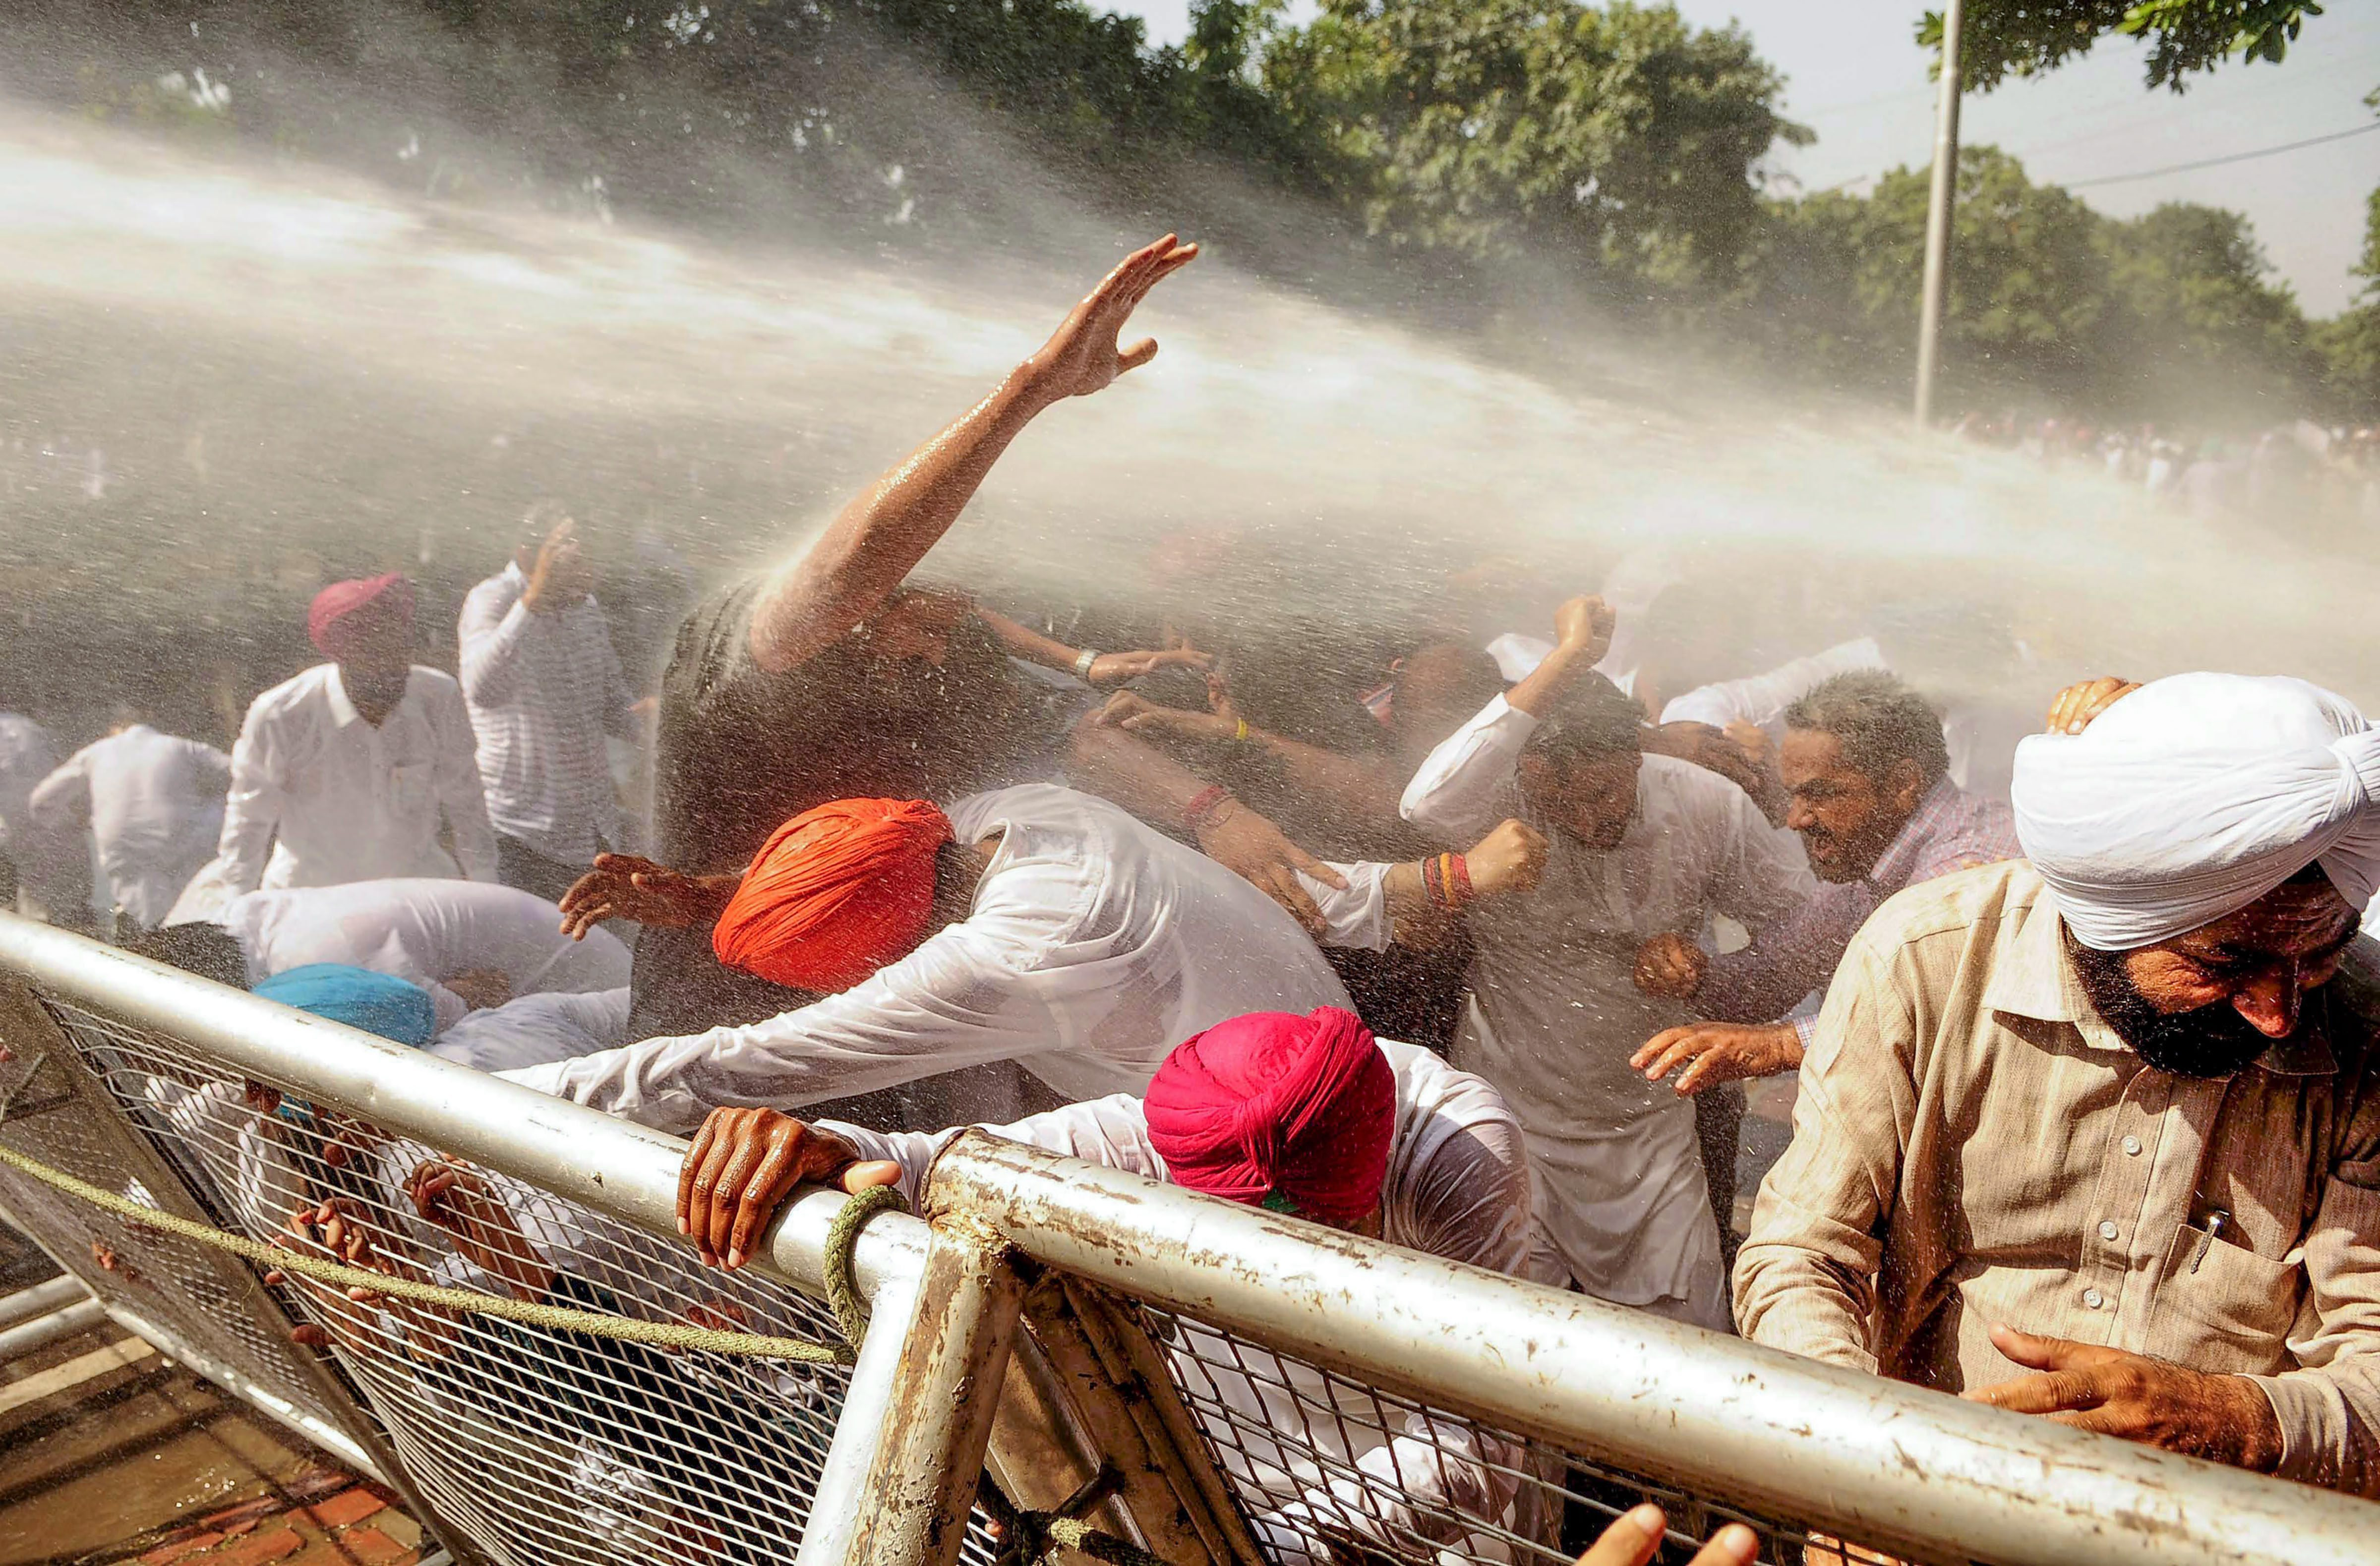 Congress workers face police water cannons during a protest against the Centre's move to divest CBI director Alok Verma of all powers and send him on leave, near the CBI office in Chandigarh - PTI